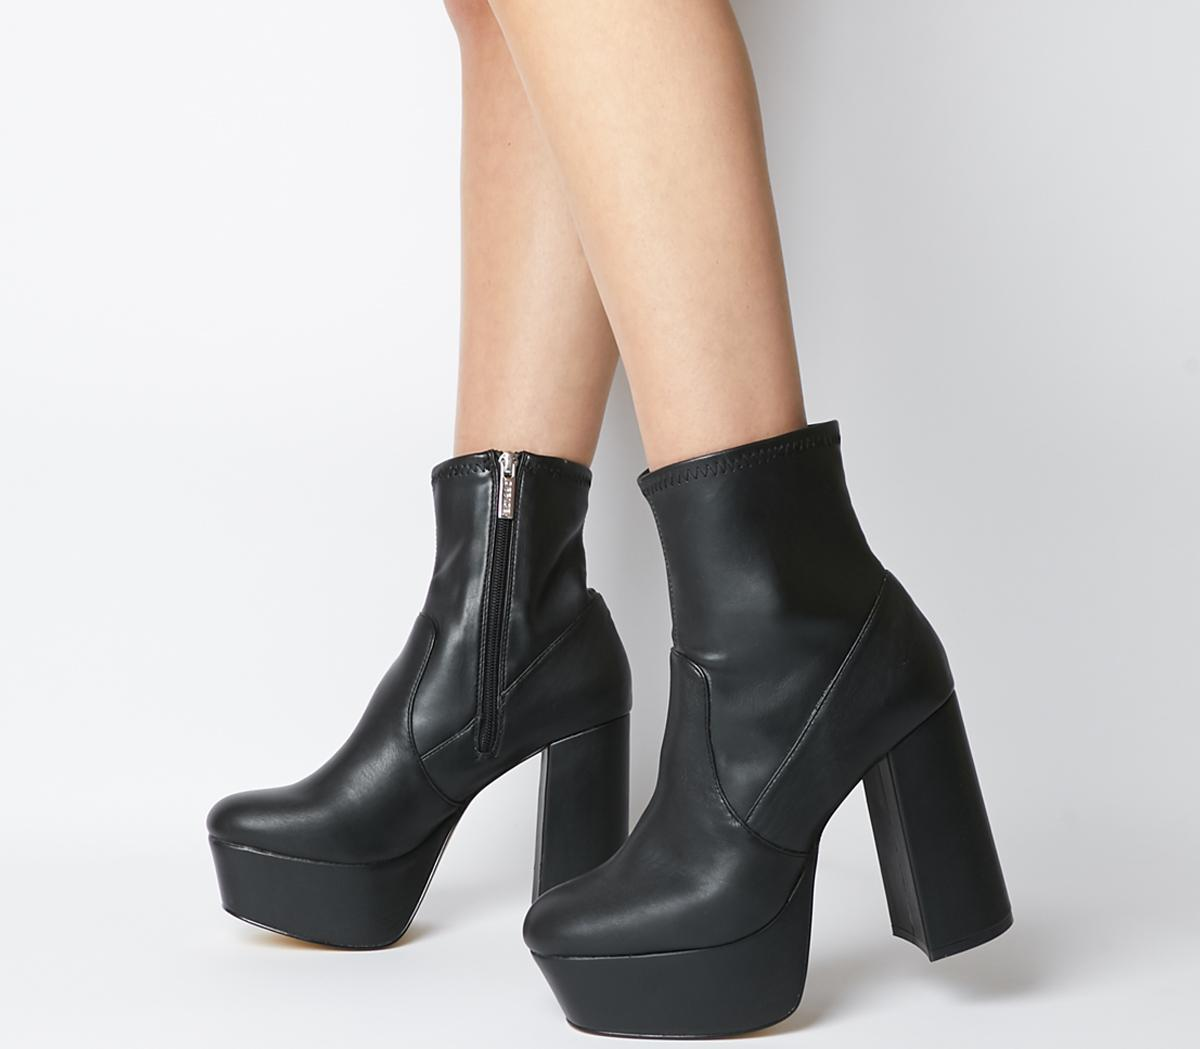 Another Level Extreme Platform Boots